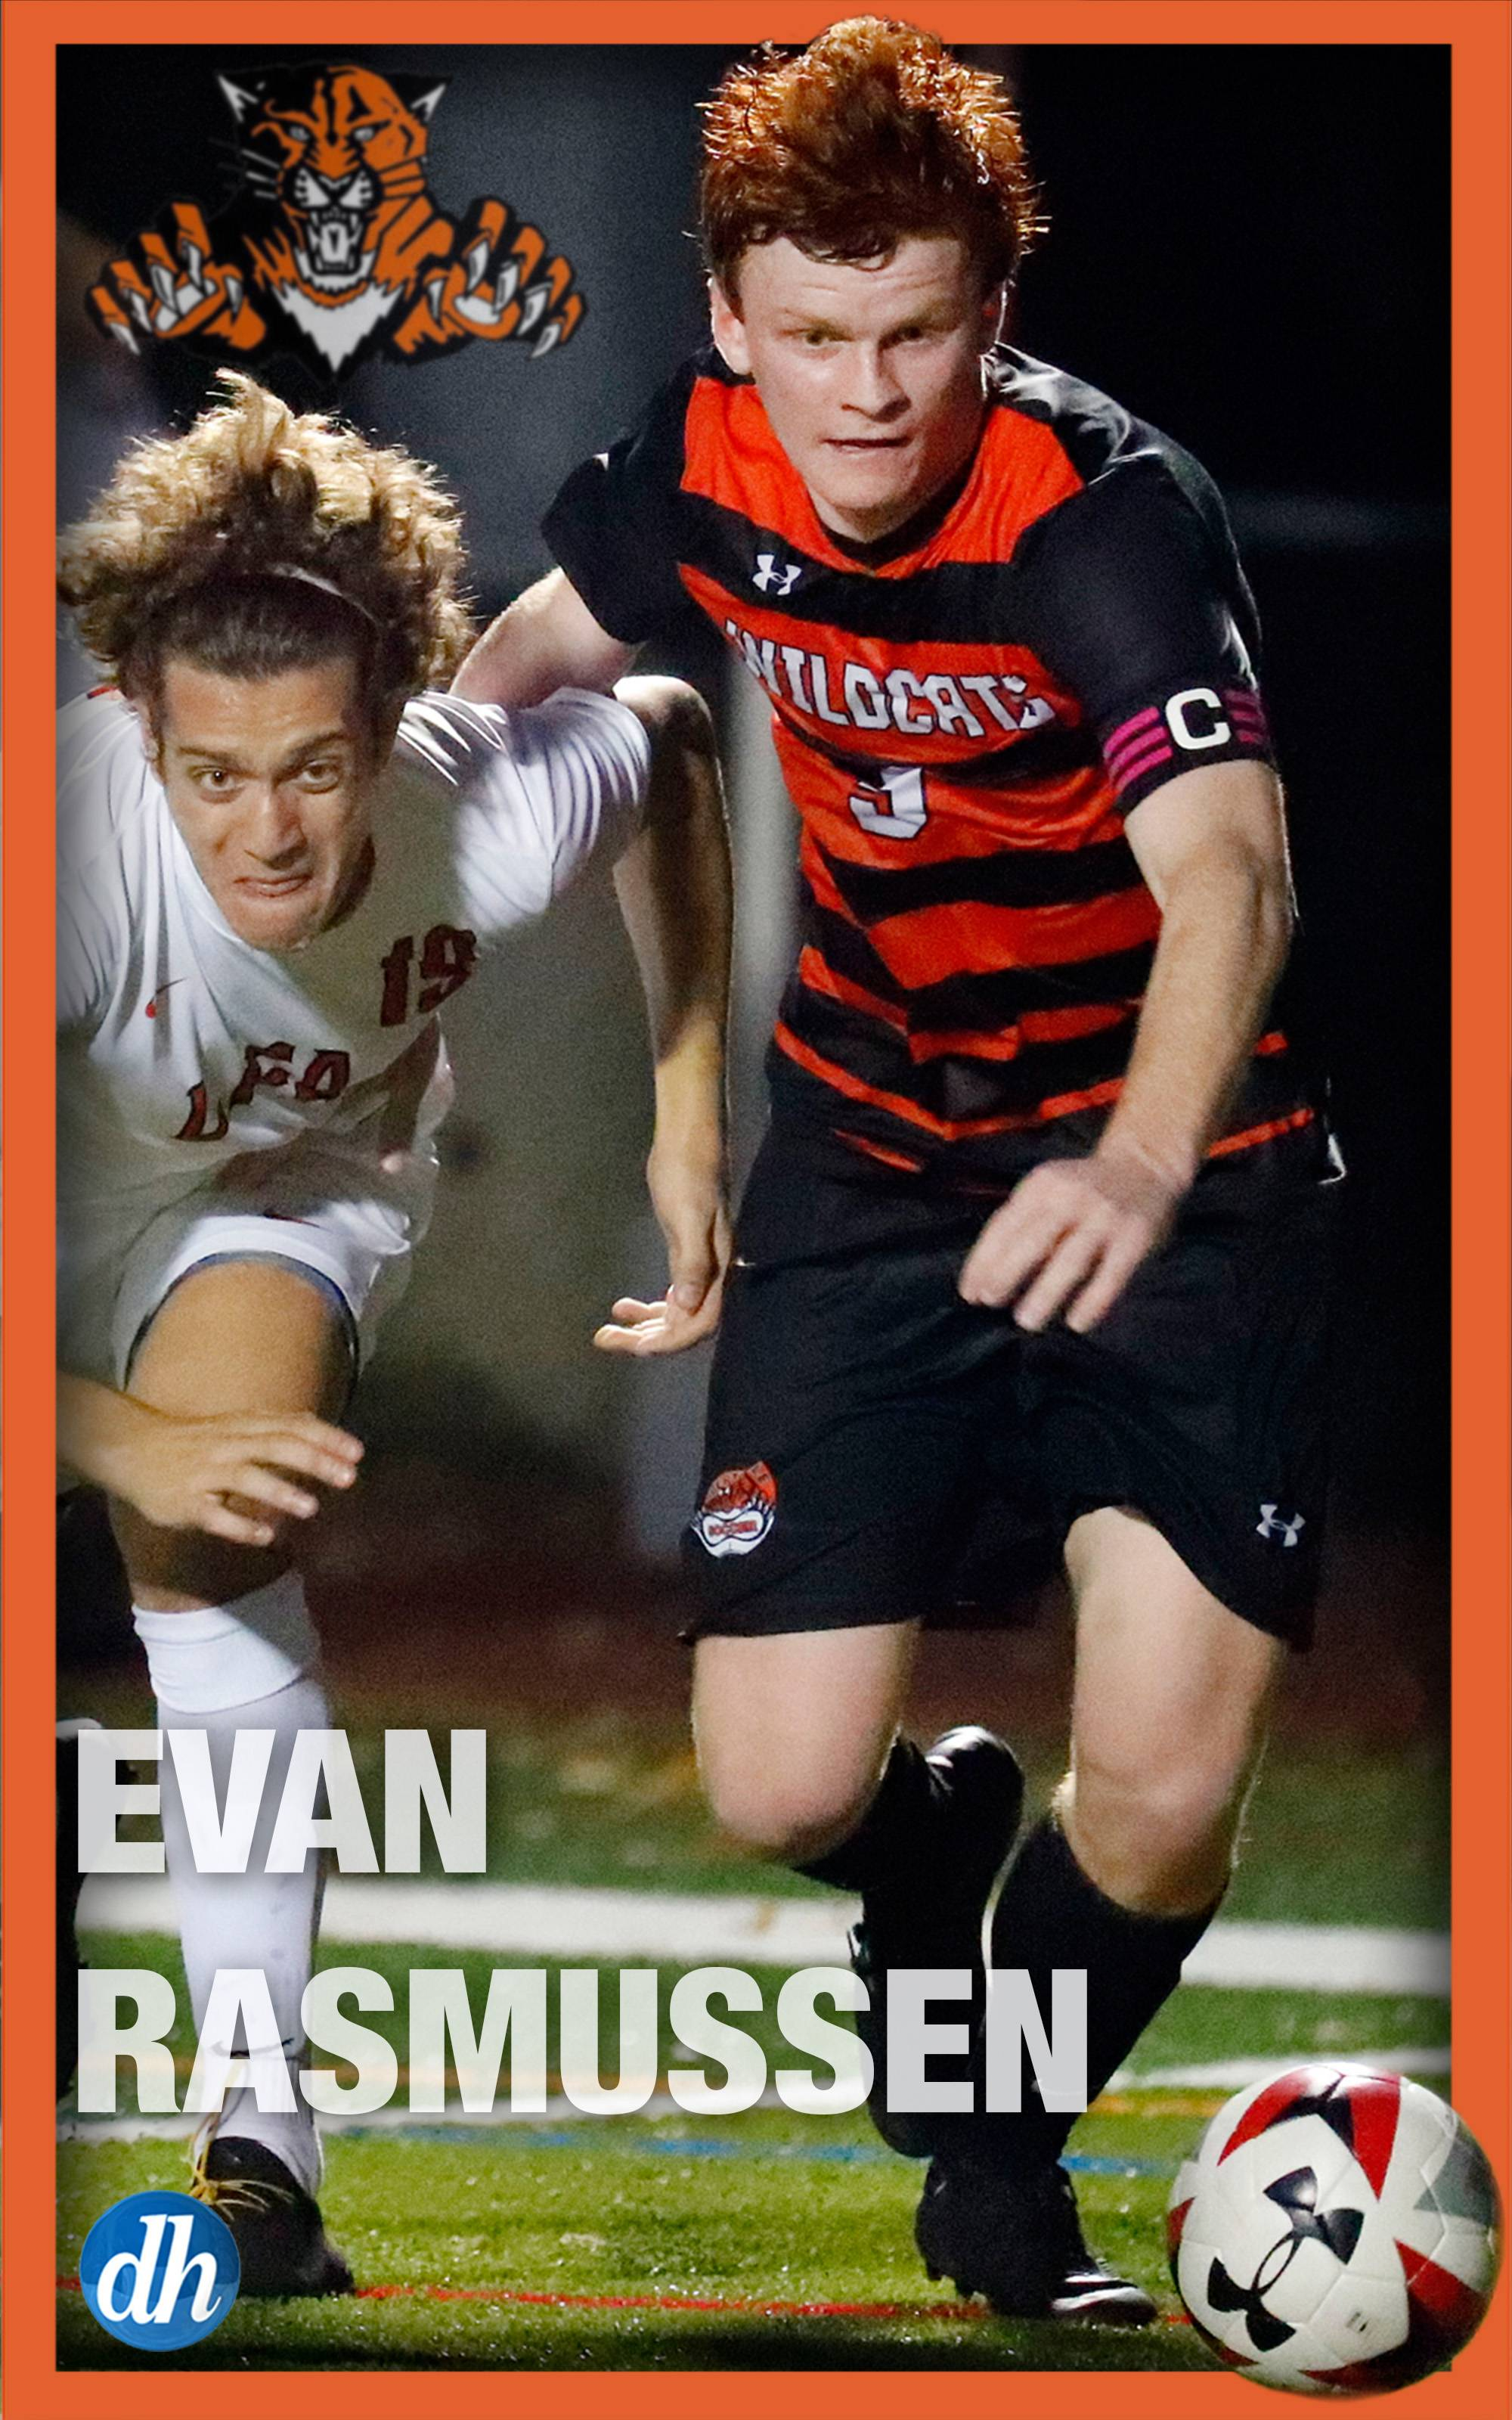 Evan Rasmussen of Libertyville High School is the All-Area Team Captain in boys soccer in Lake County.